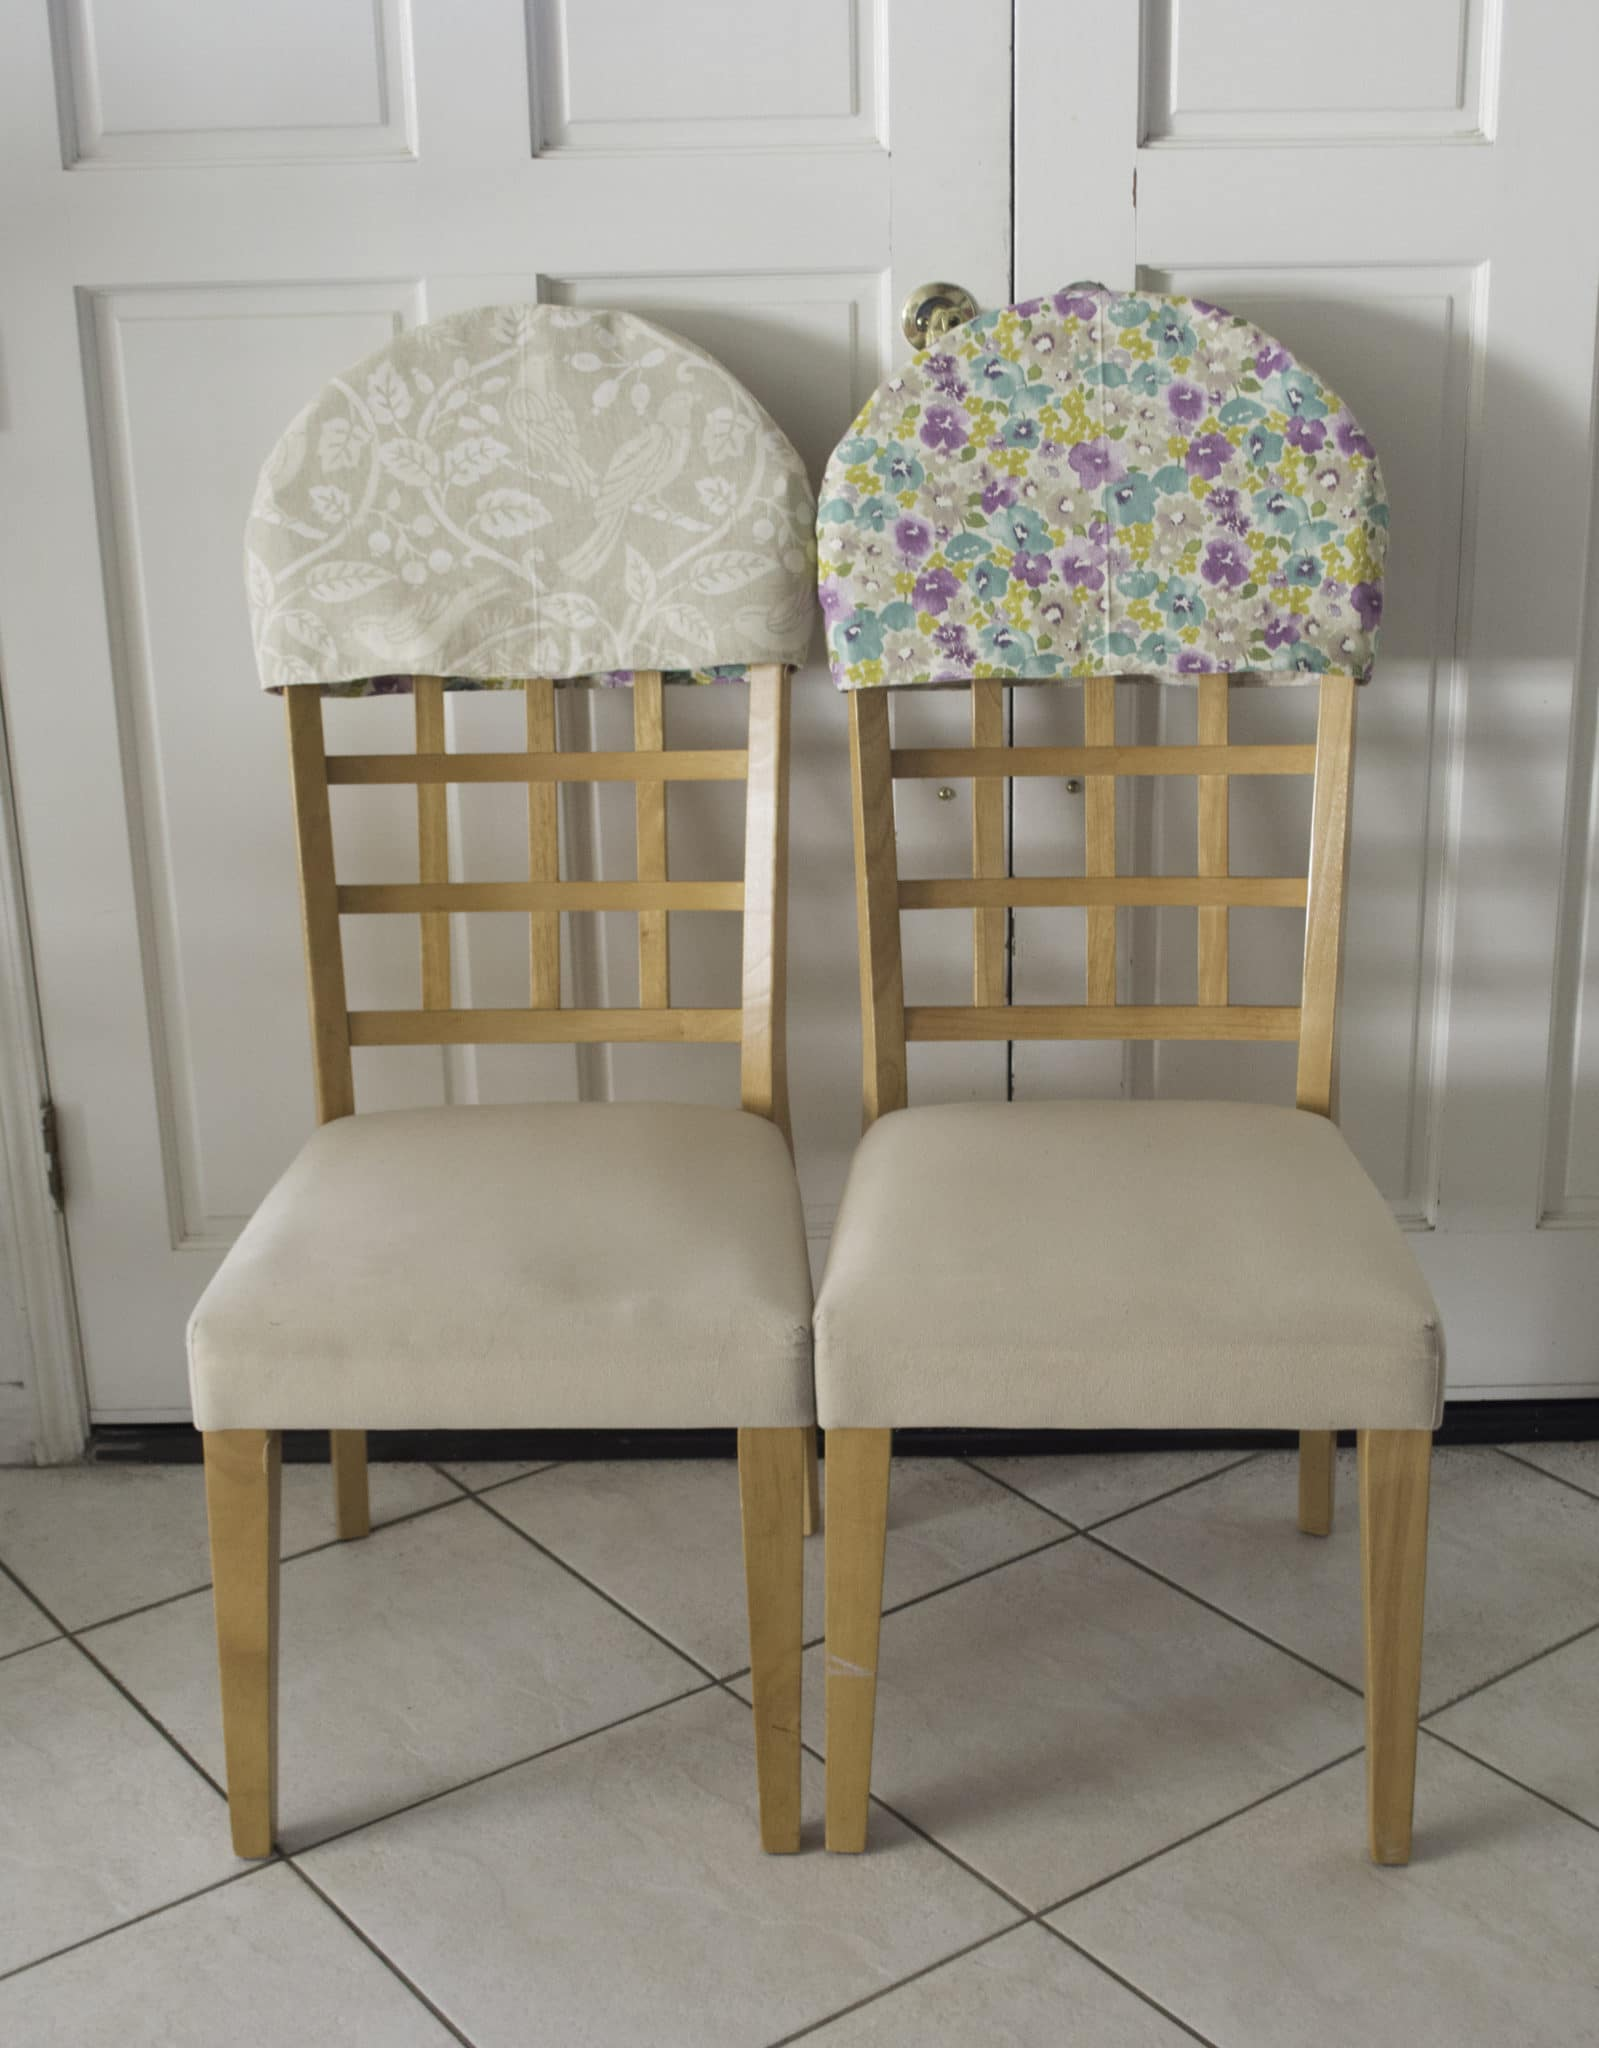 Reversible Padded Chair Back Covers - Sew Very Crafty